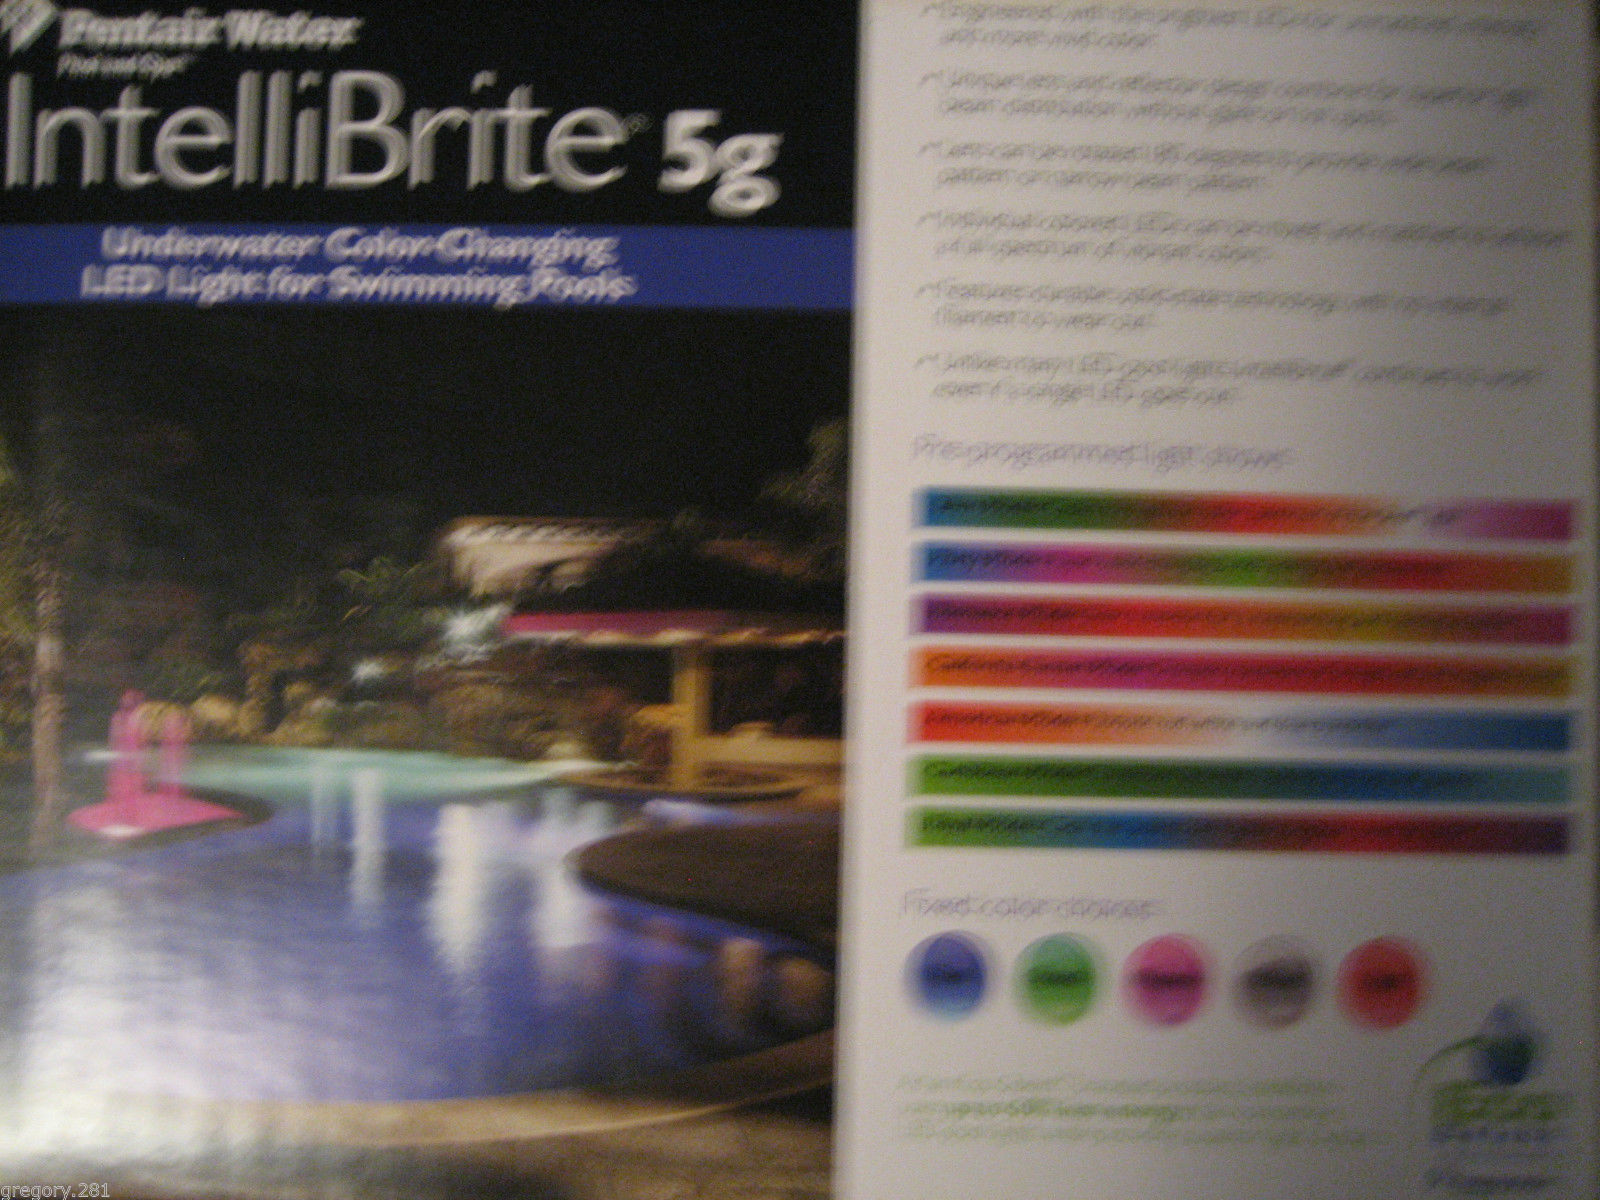 Pentair 601002 Intellibrite 5g 120v 100 39 Led Color Changing Pool Light Other Pool Equipment